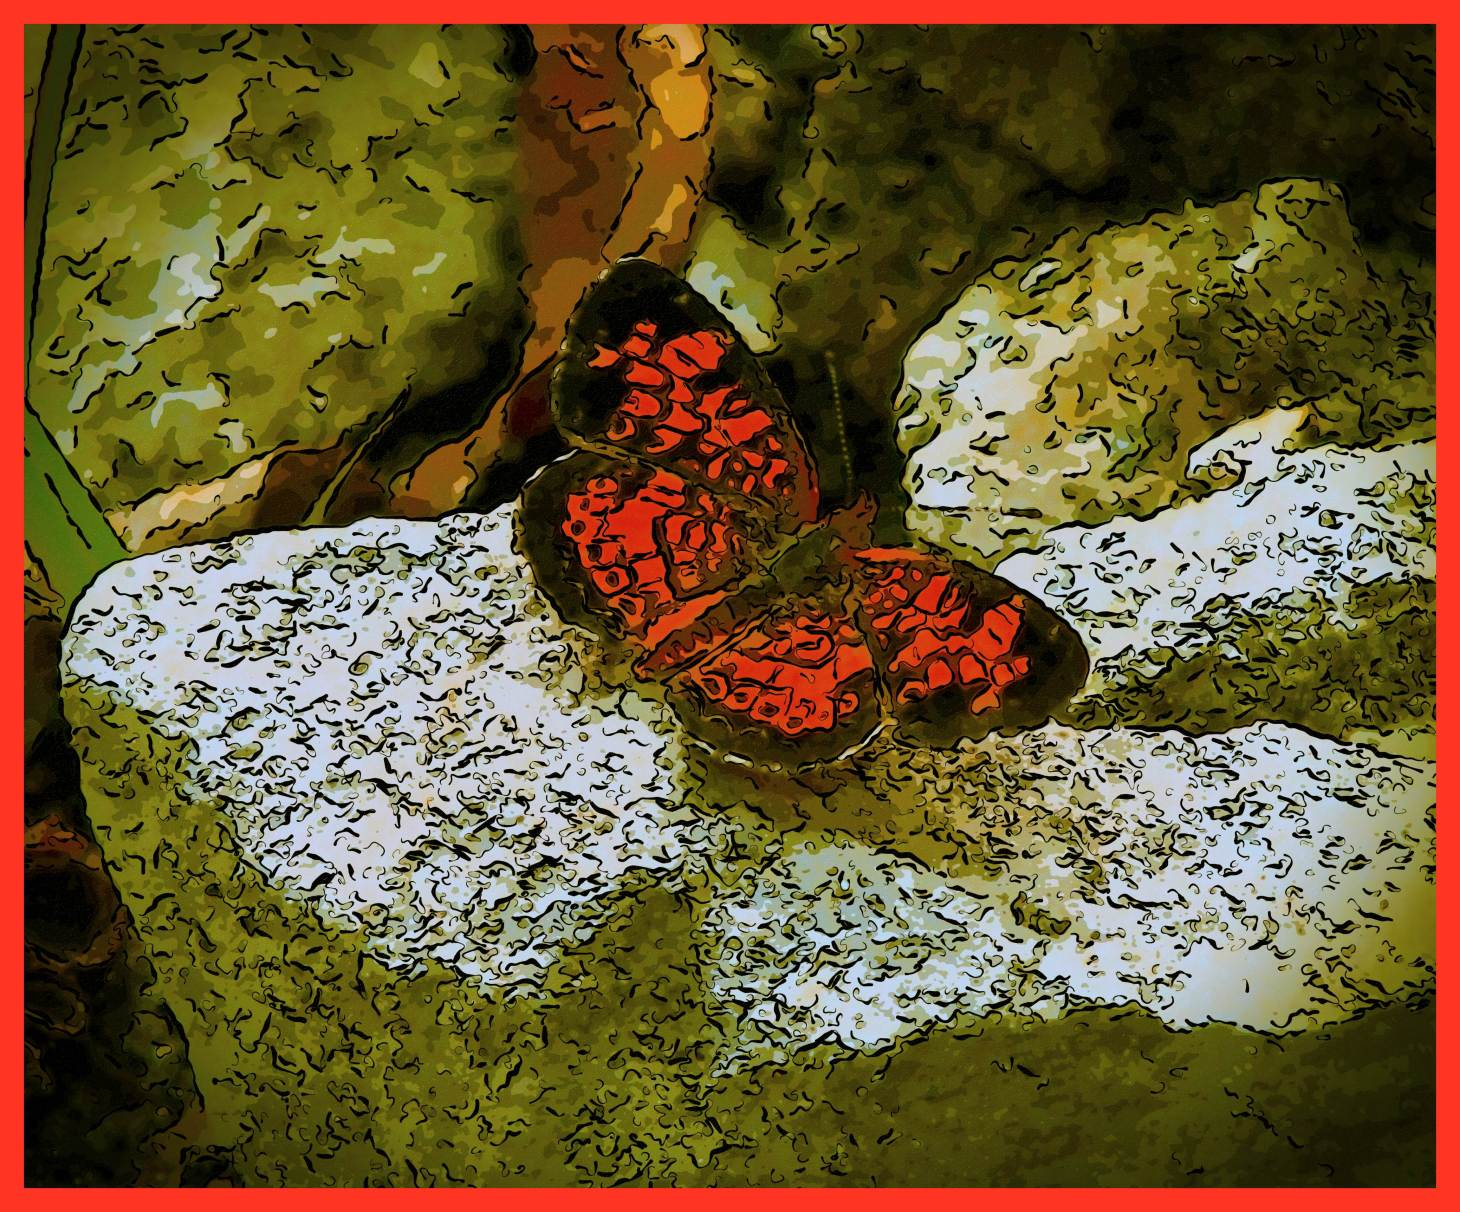 Pearl Crescent Butterfly. (2) Photo by Thomas Peace c. 2015